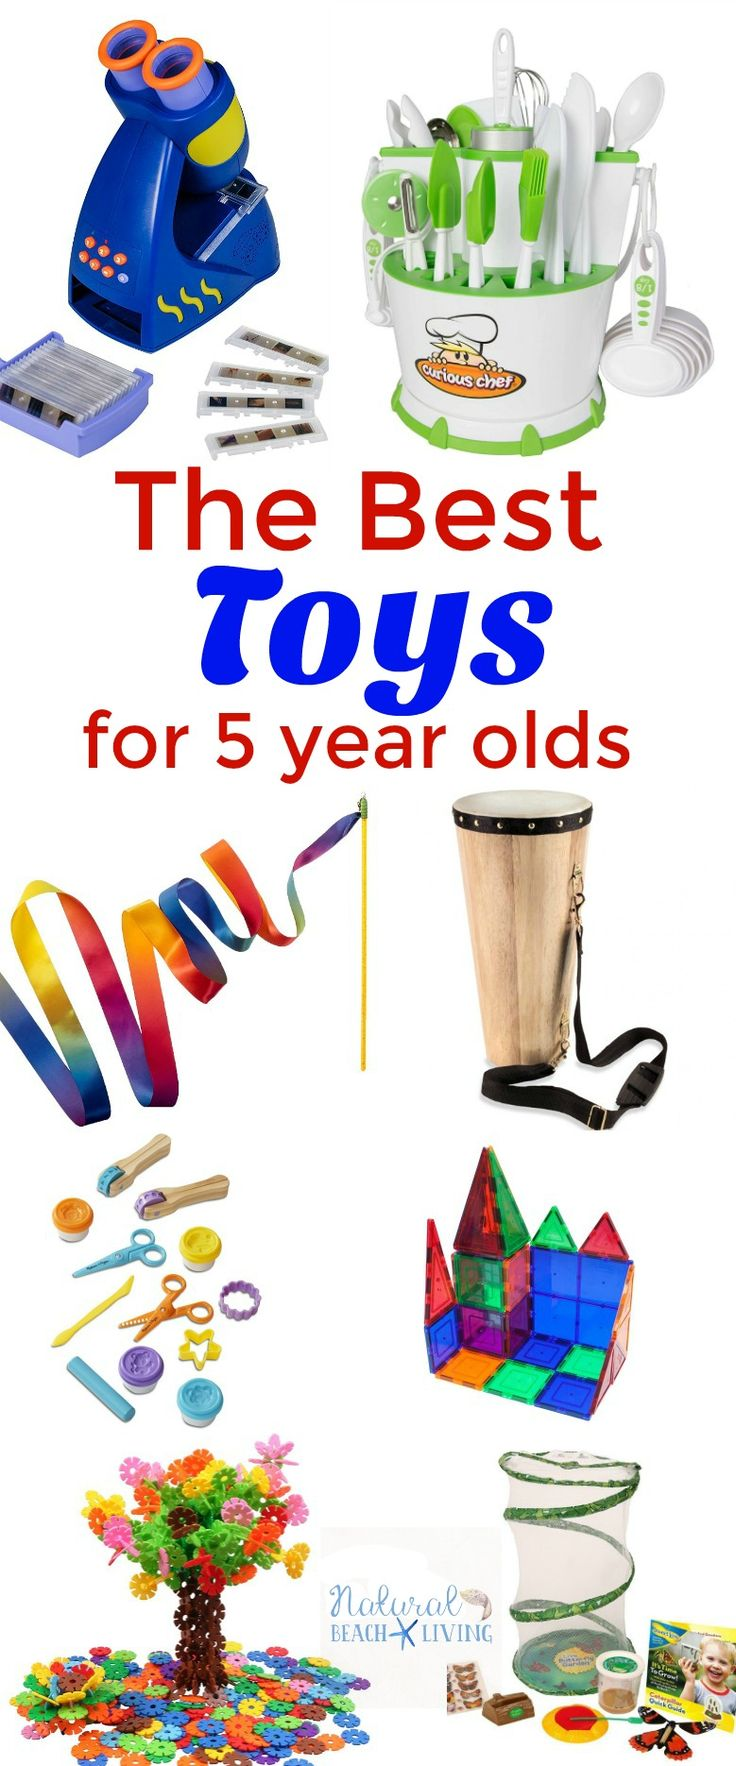 The Best Montessori Toys for 5 Year Olds, Educational Toys, Toys for Boys, Toys for Girls, The best toys for kids, Hands on learning toys, Gift guide, Gift ideas #Toys #giftideas #gifts